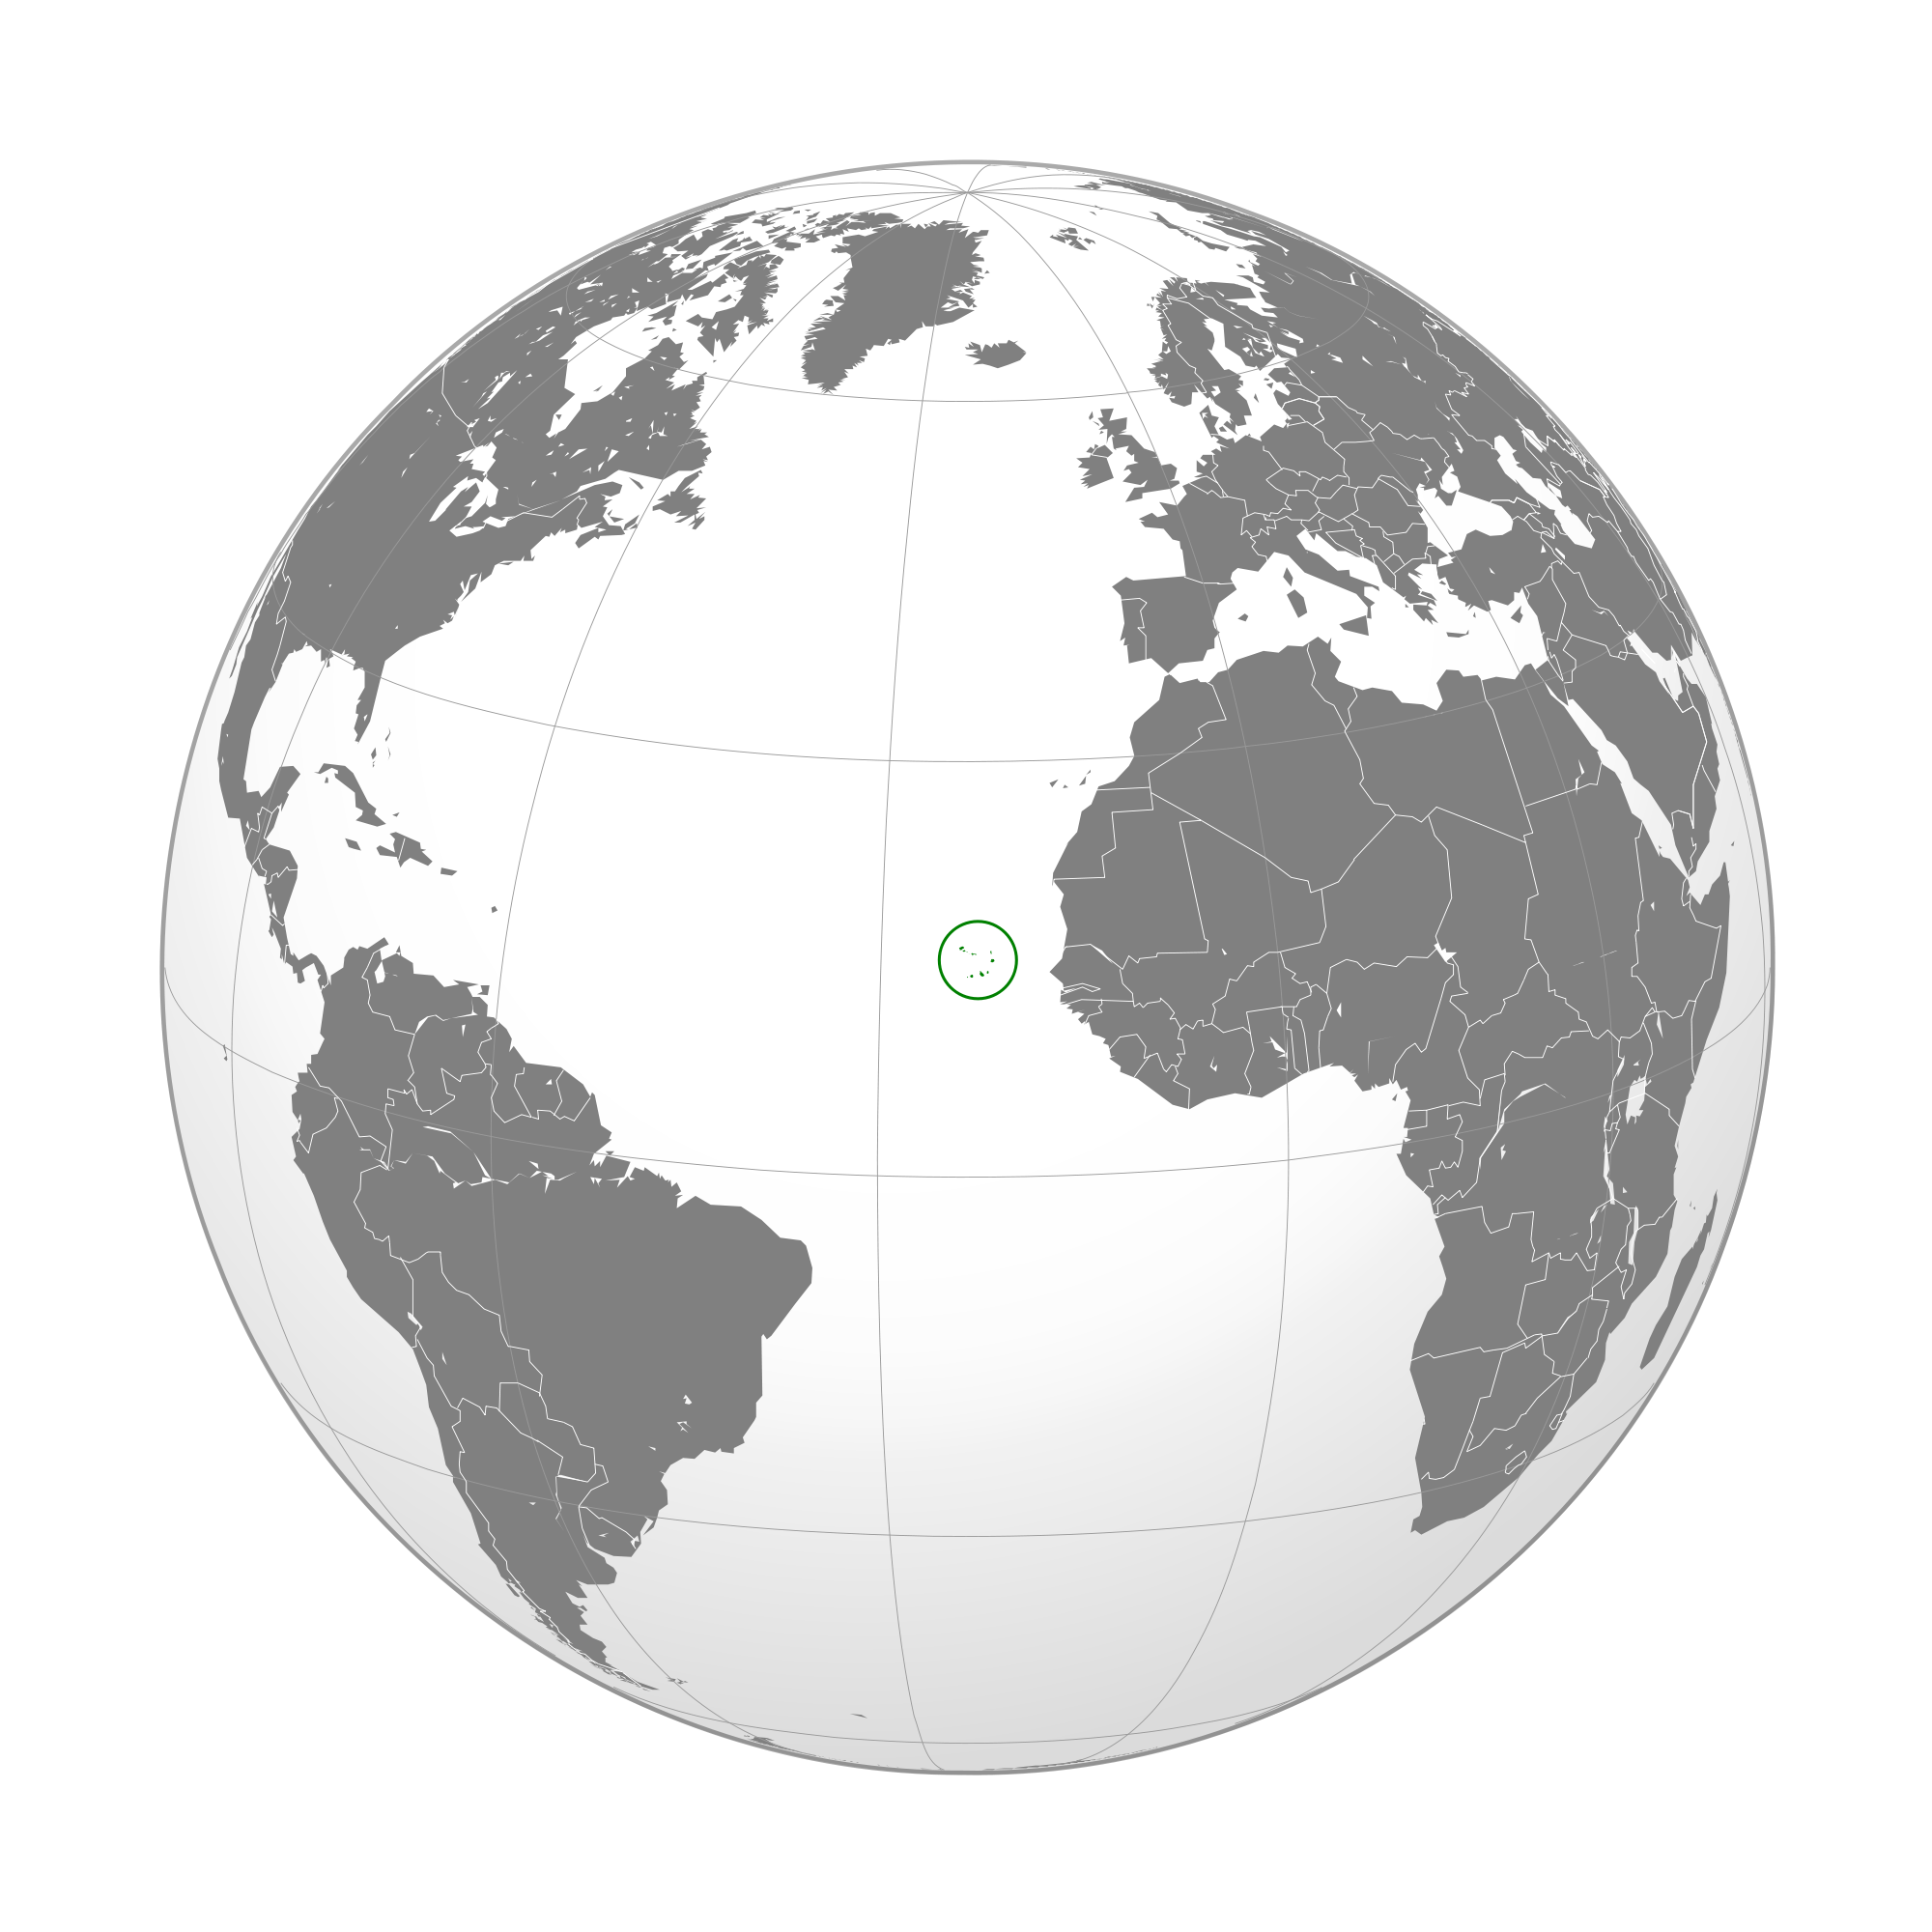 Where Is Cape Verde Located On The World Map.Location Of The Cape Verde In The World Map